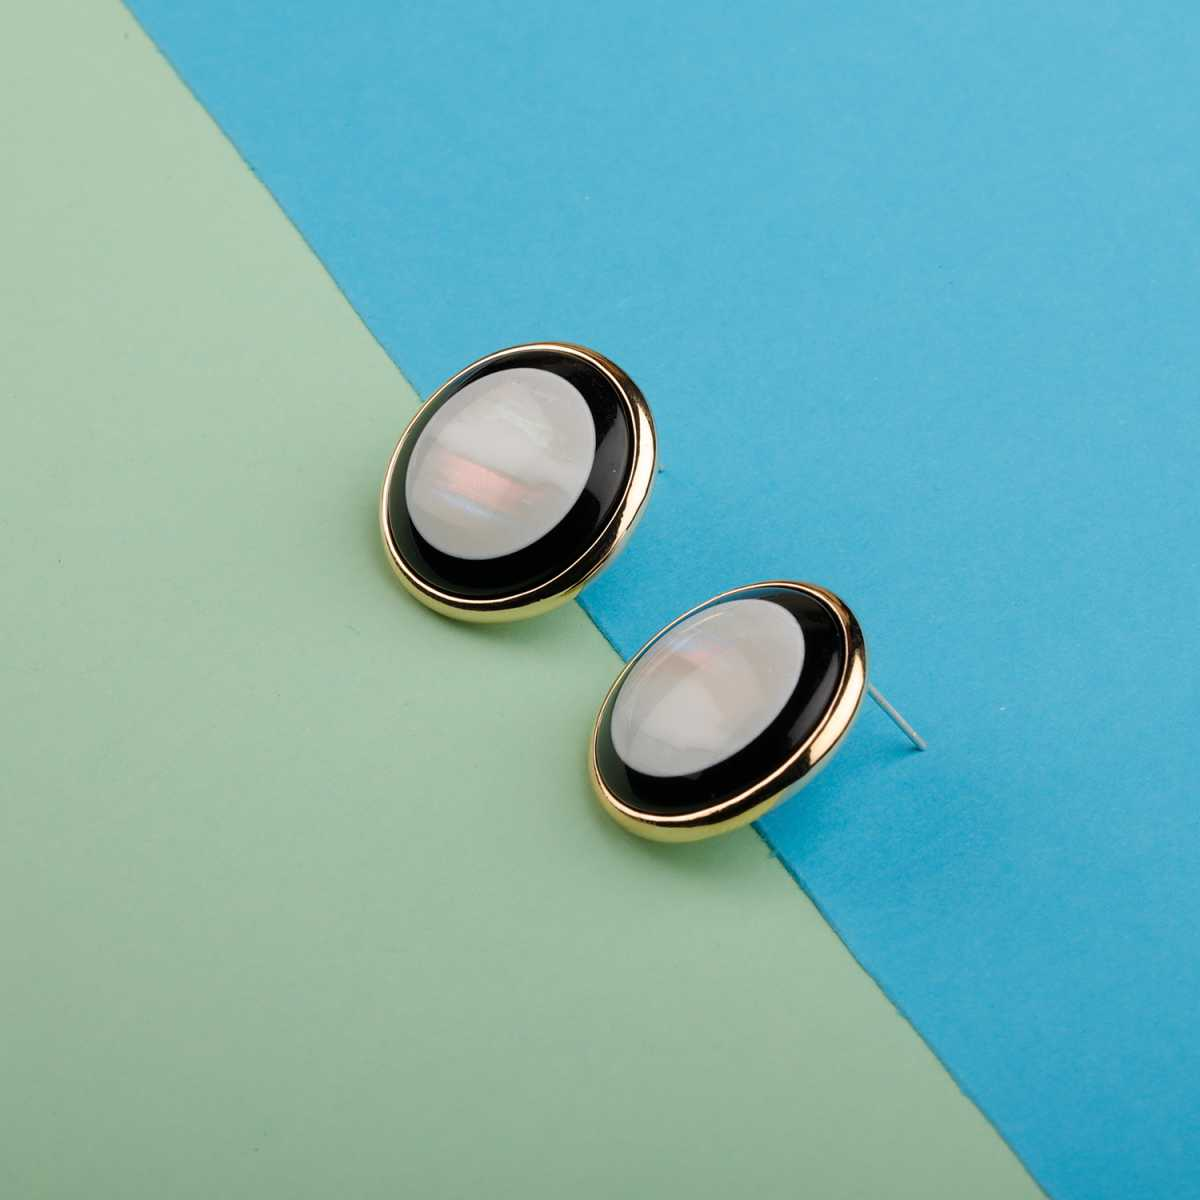 Silver Shine Classic Black With Simple Fancy Stud Earring Look For Women